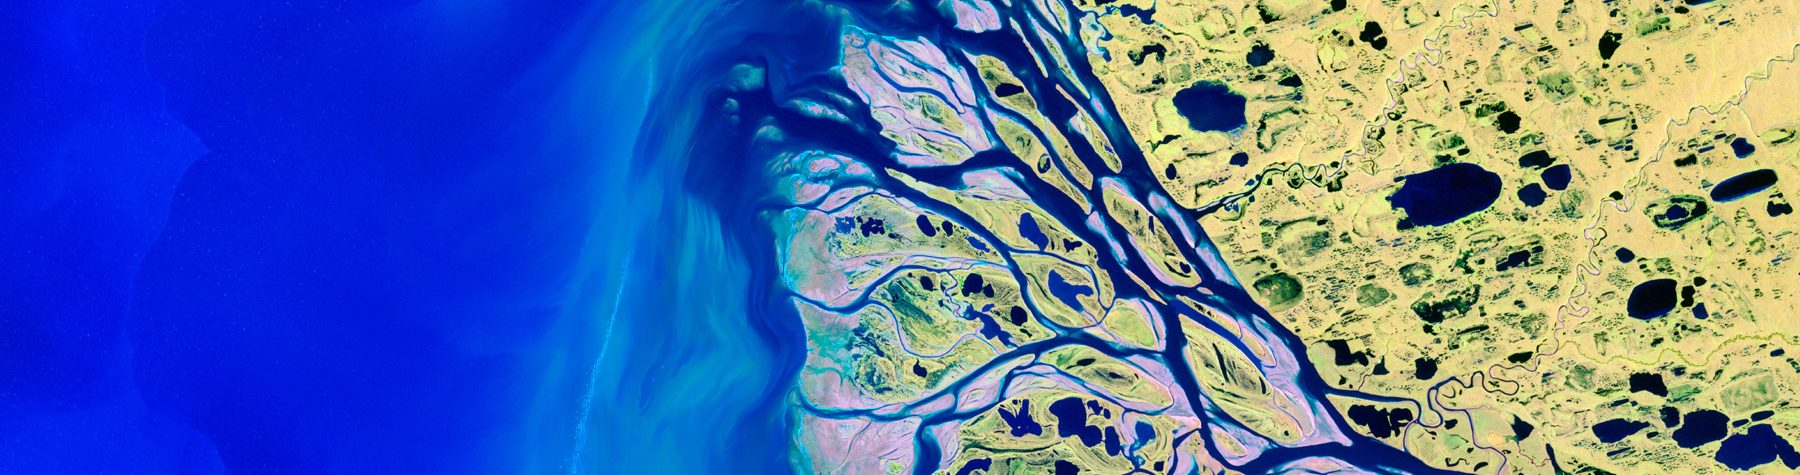 Online Remote Sensing Graduate Certificate: Geographic Map of Arctic Tundra